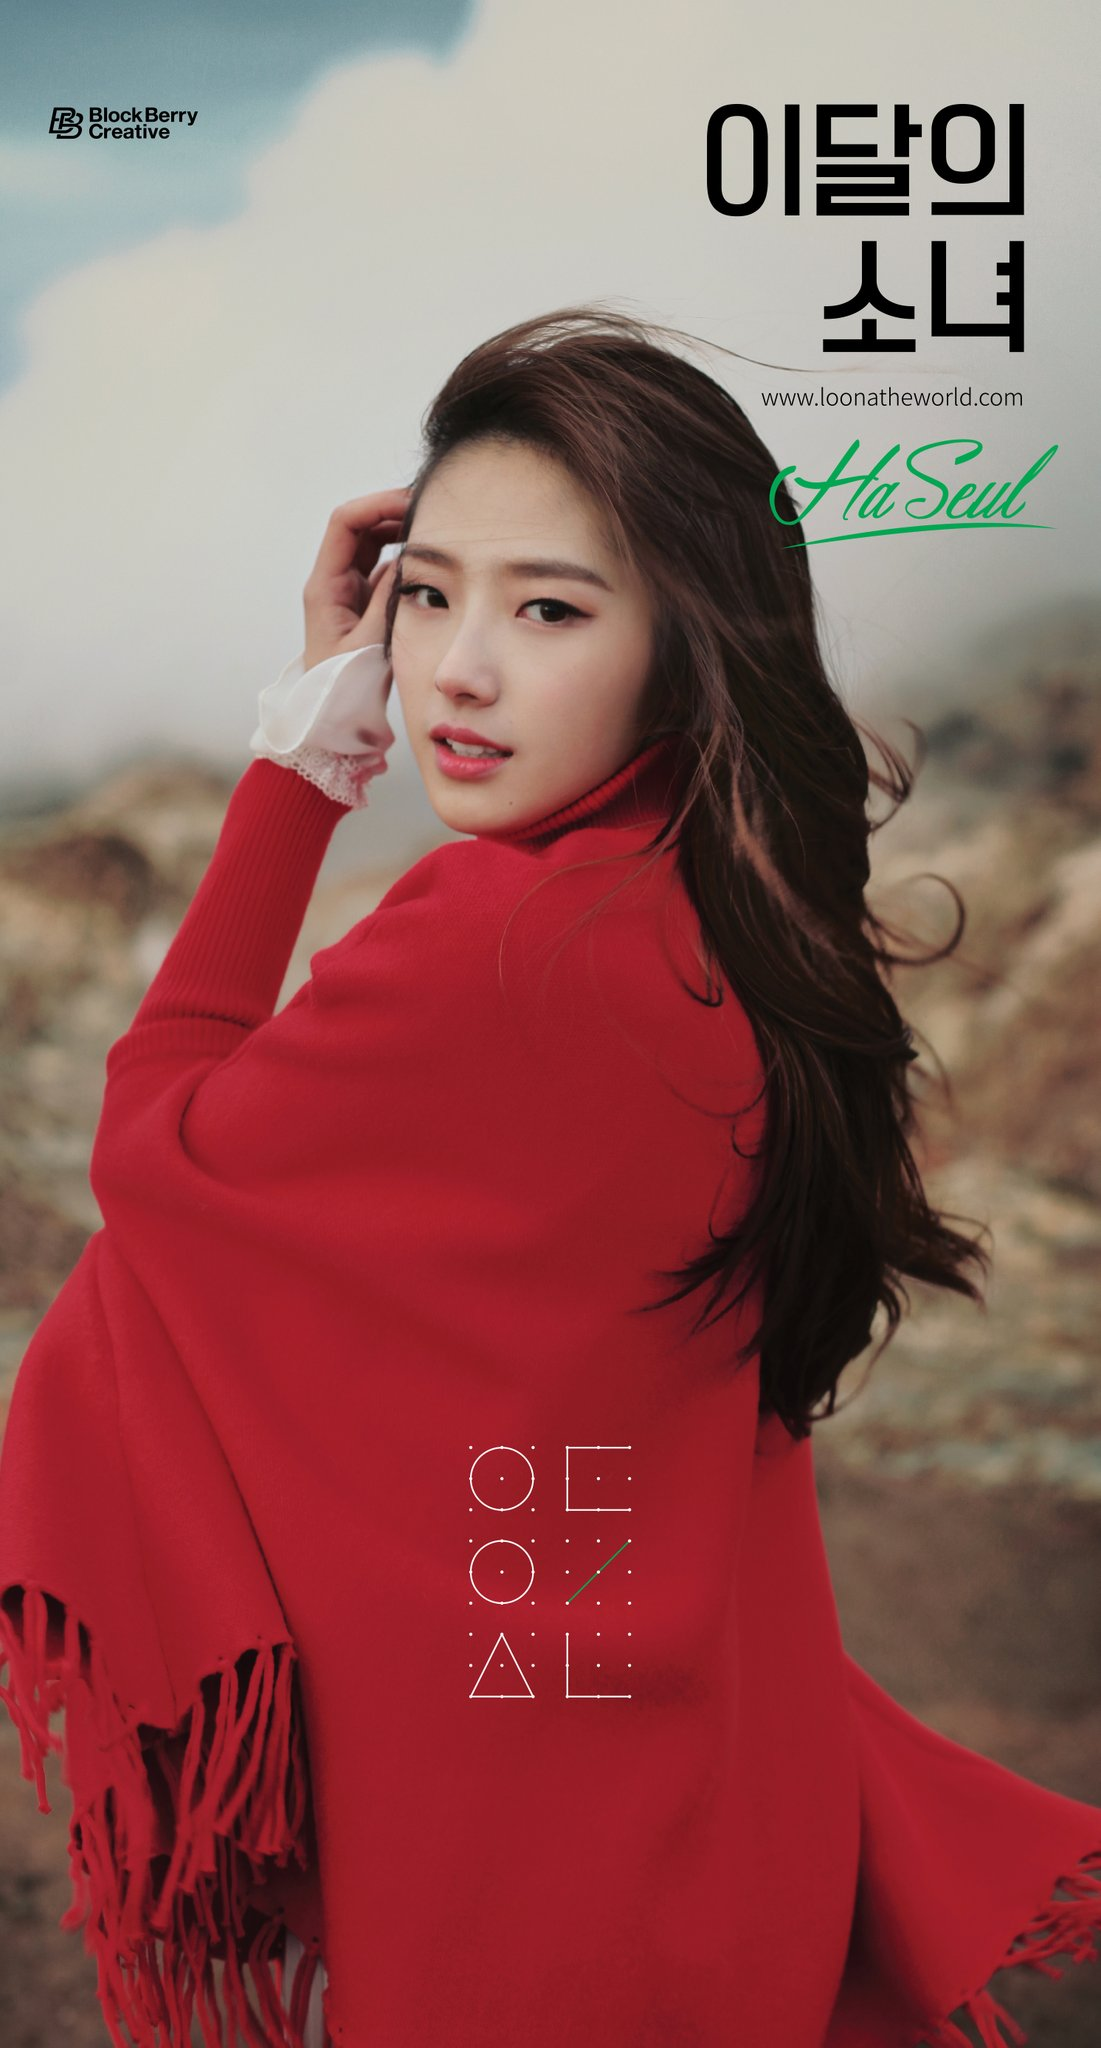 HaSeul debut photo.PNG